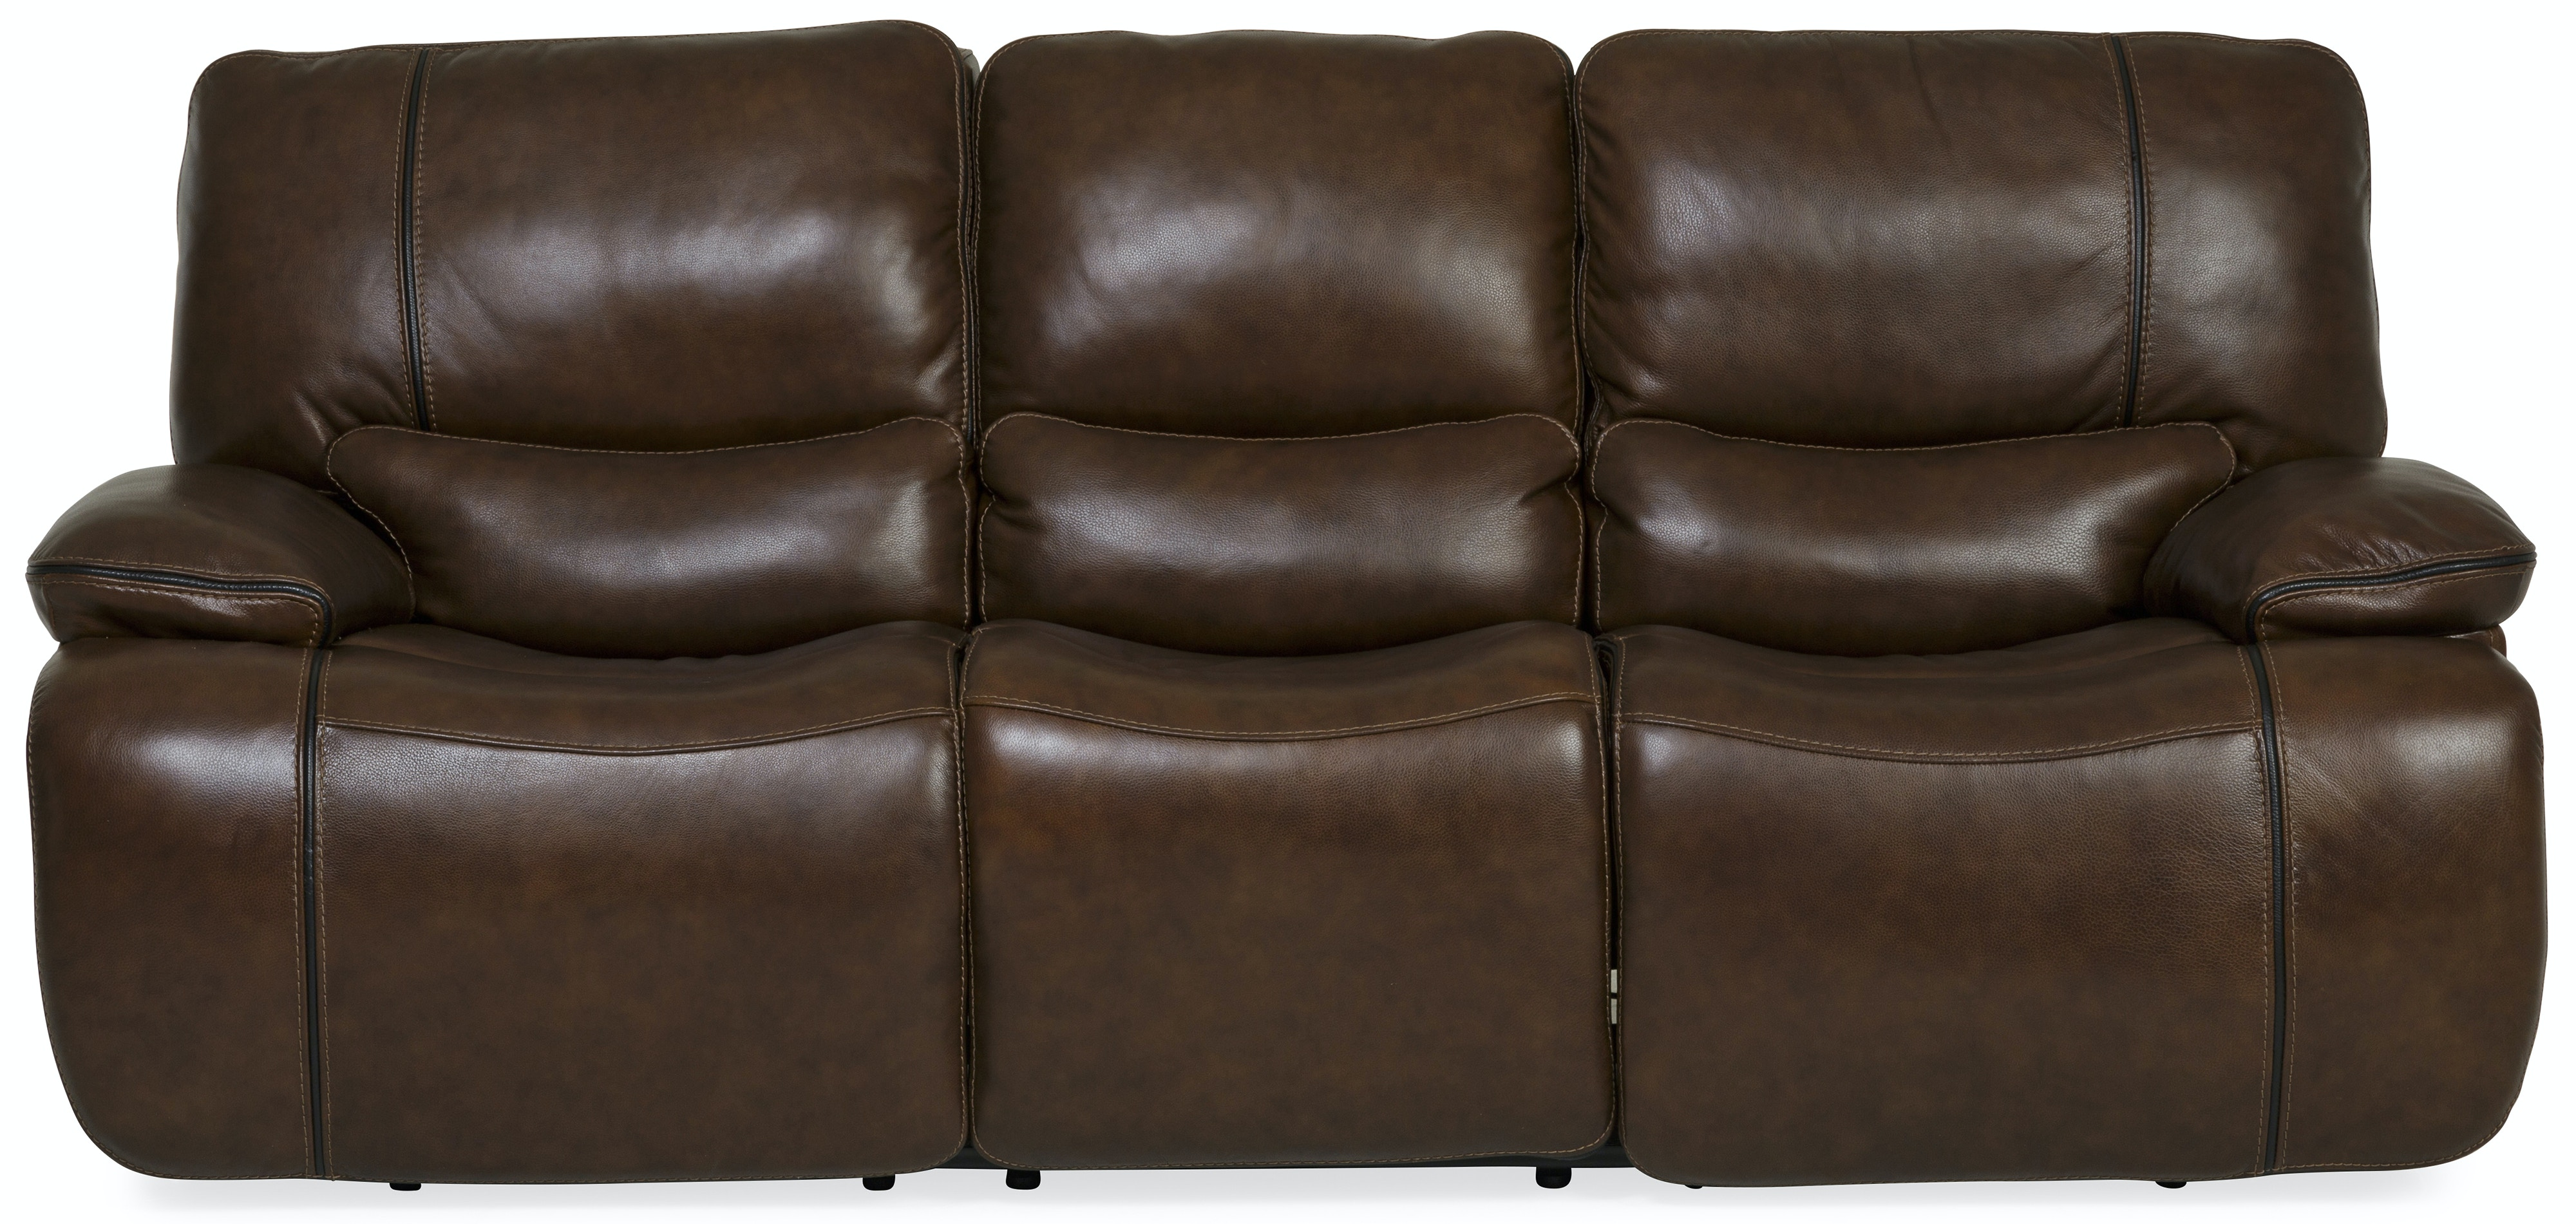 Exceptionnel Boden Bramble Power Reclining Leather Sofa ST:480411